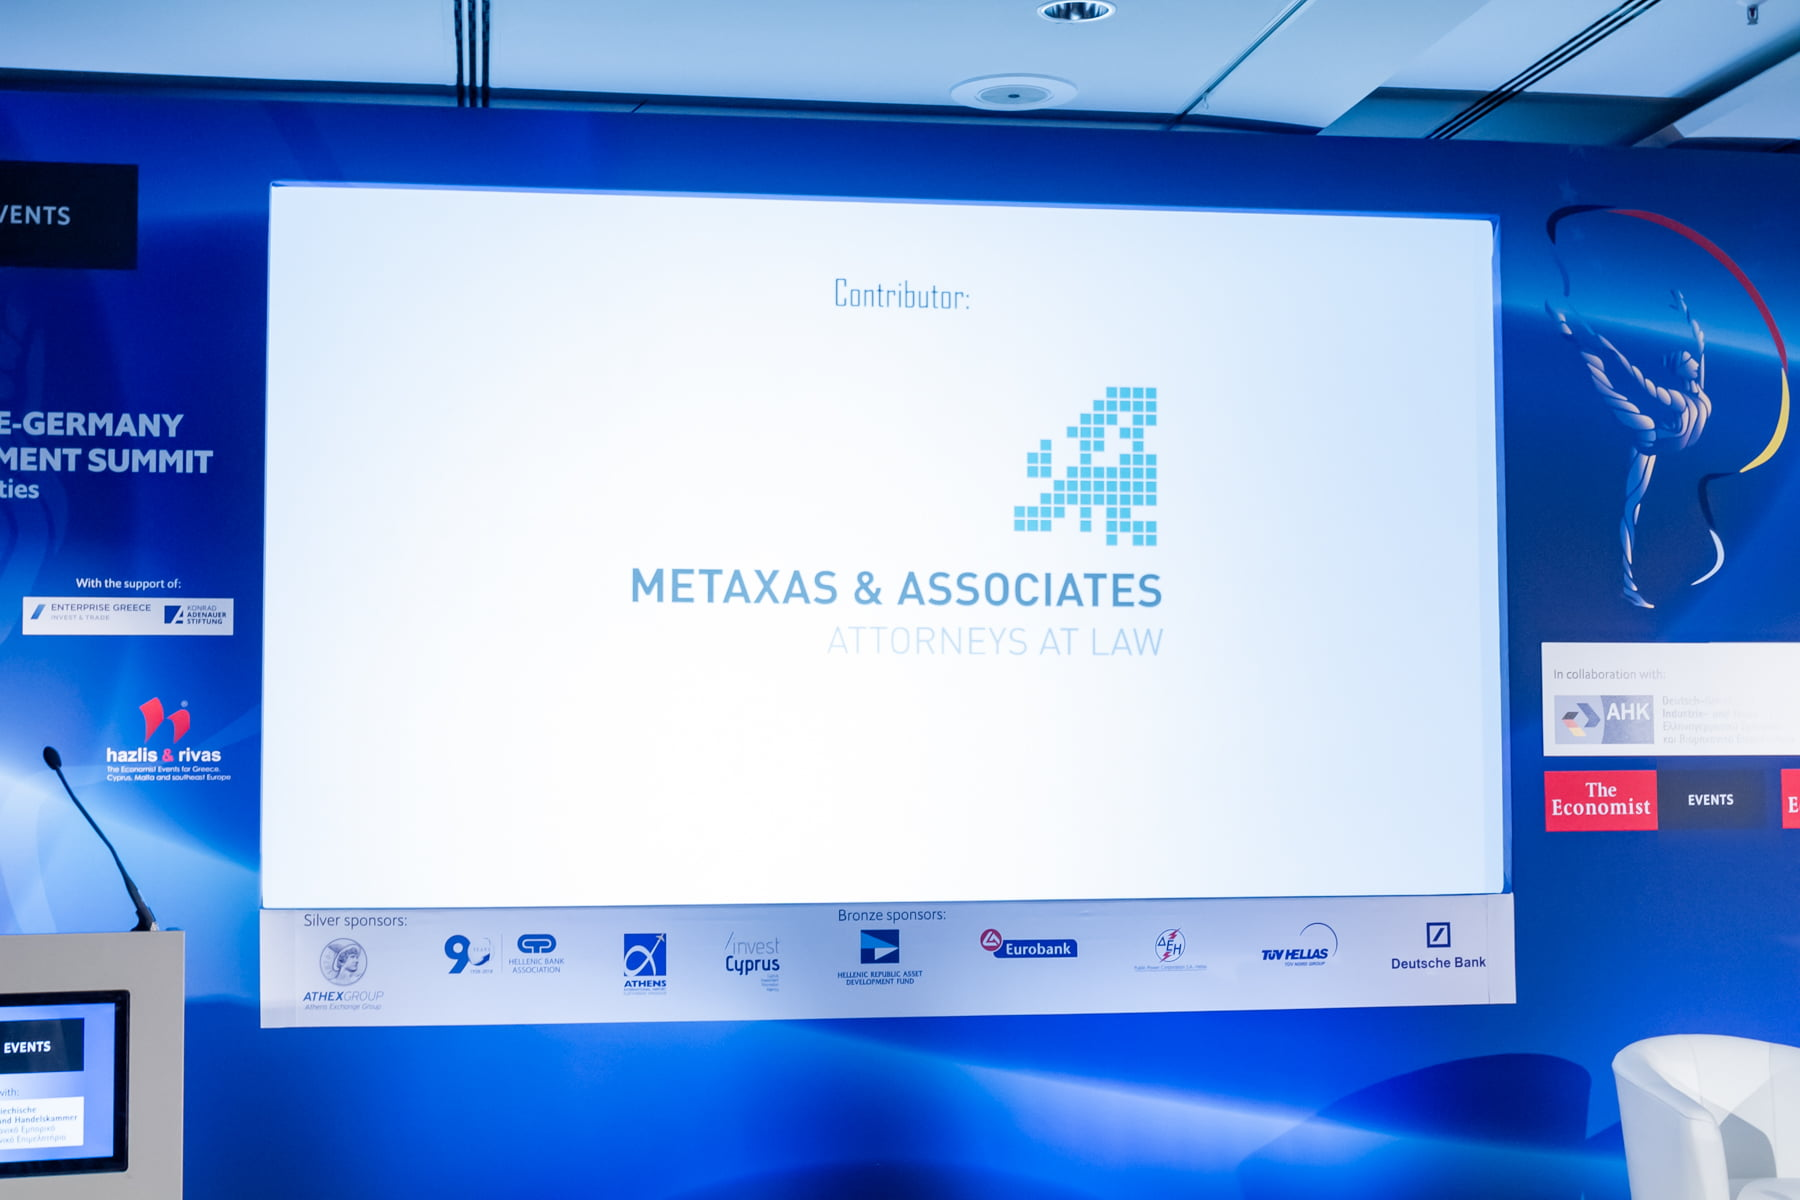 Michalis Mathioulakis – Metaxas & Associates